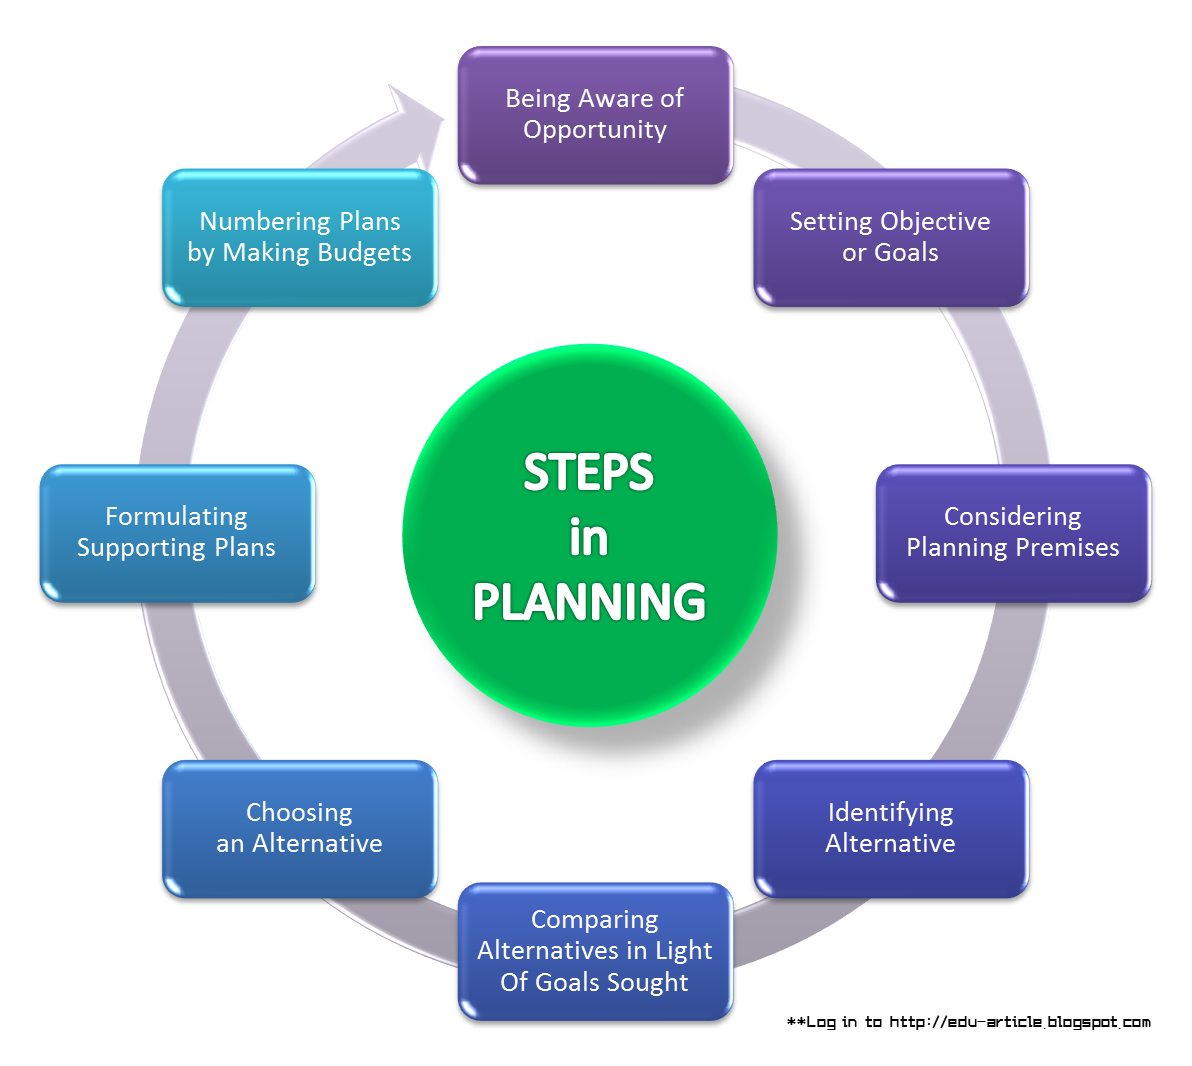 importance of strategic planning essay Human resource planning (hrp) plays an eminent role in any organisation as a medium to achieve organisational goals through strategic human resource managementit is characterised by a systematic process, undertaken through forecasting human resourc.